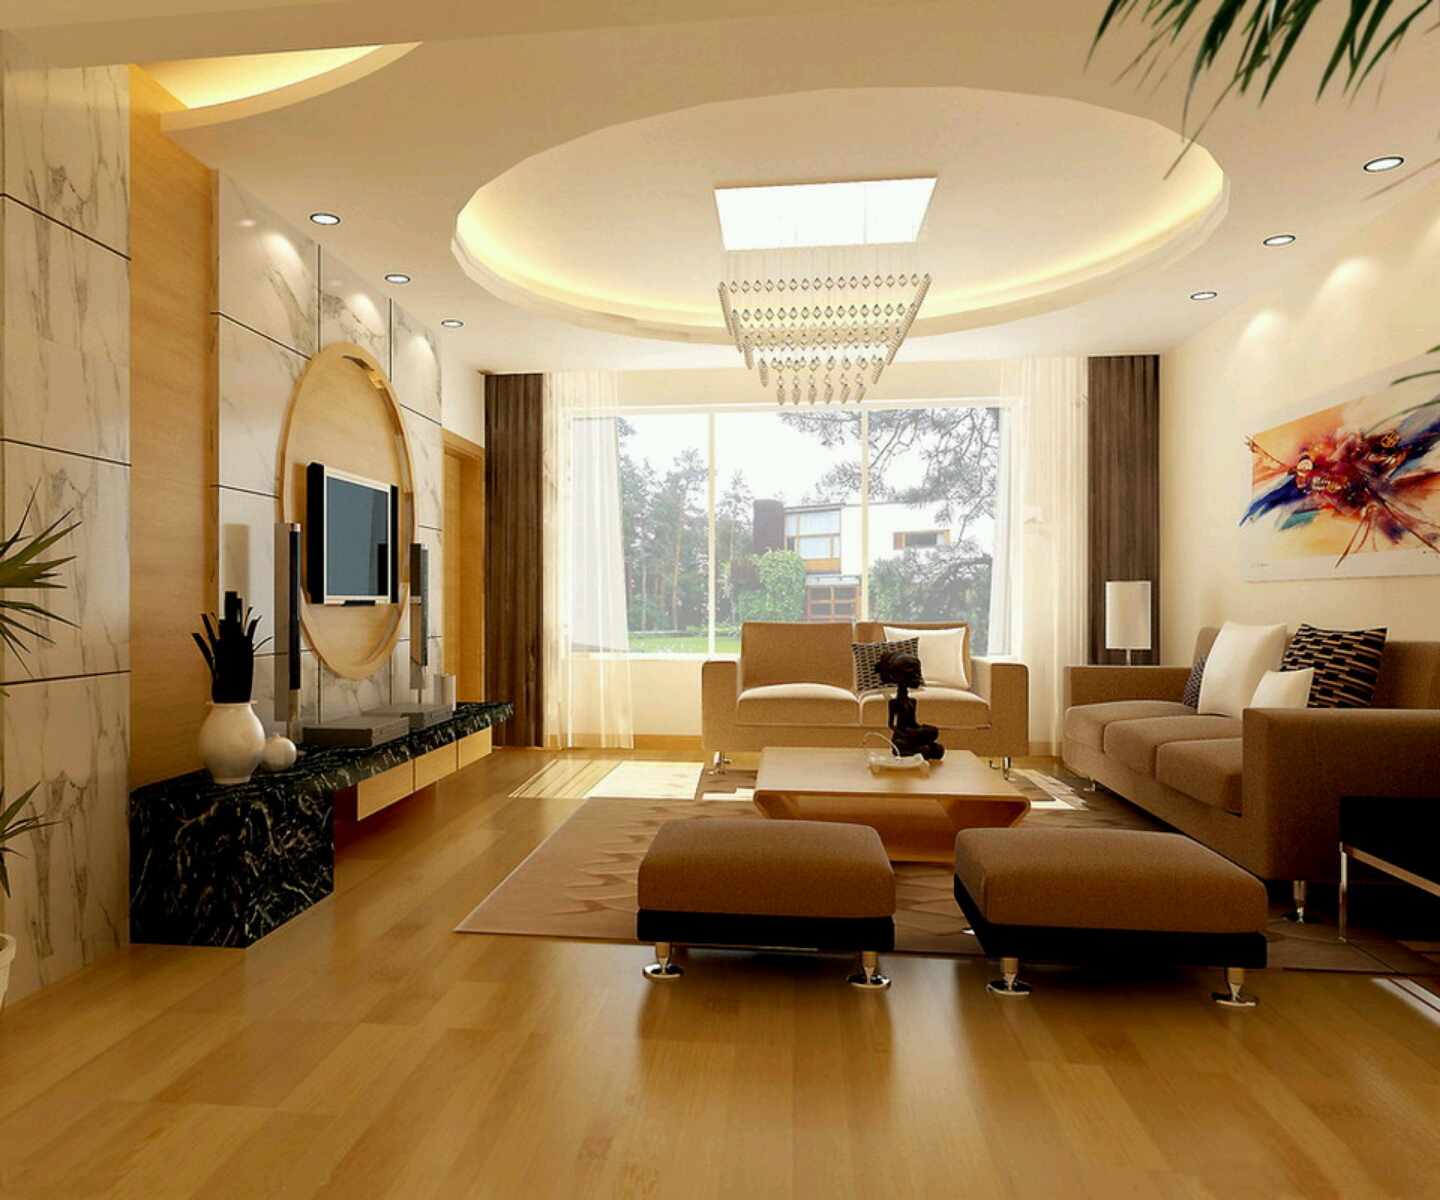 New home designs latest modern interior decoration for Interior decoration for living room